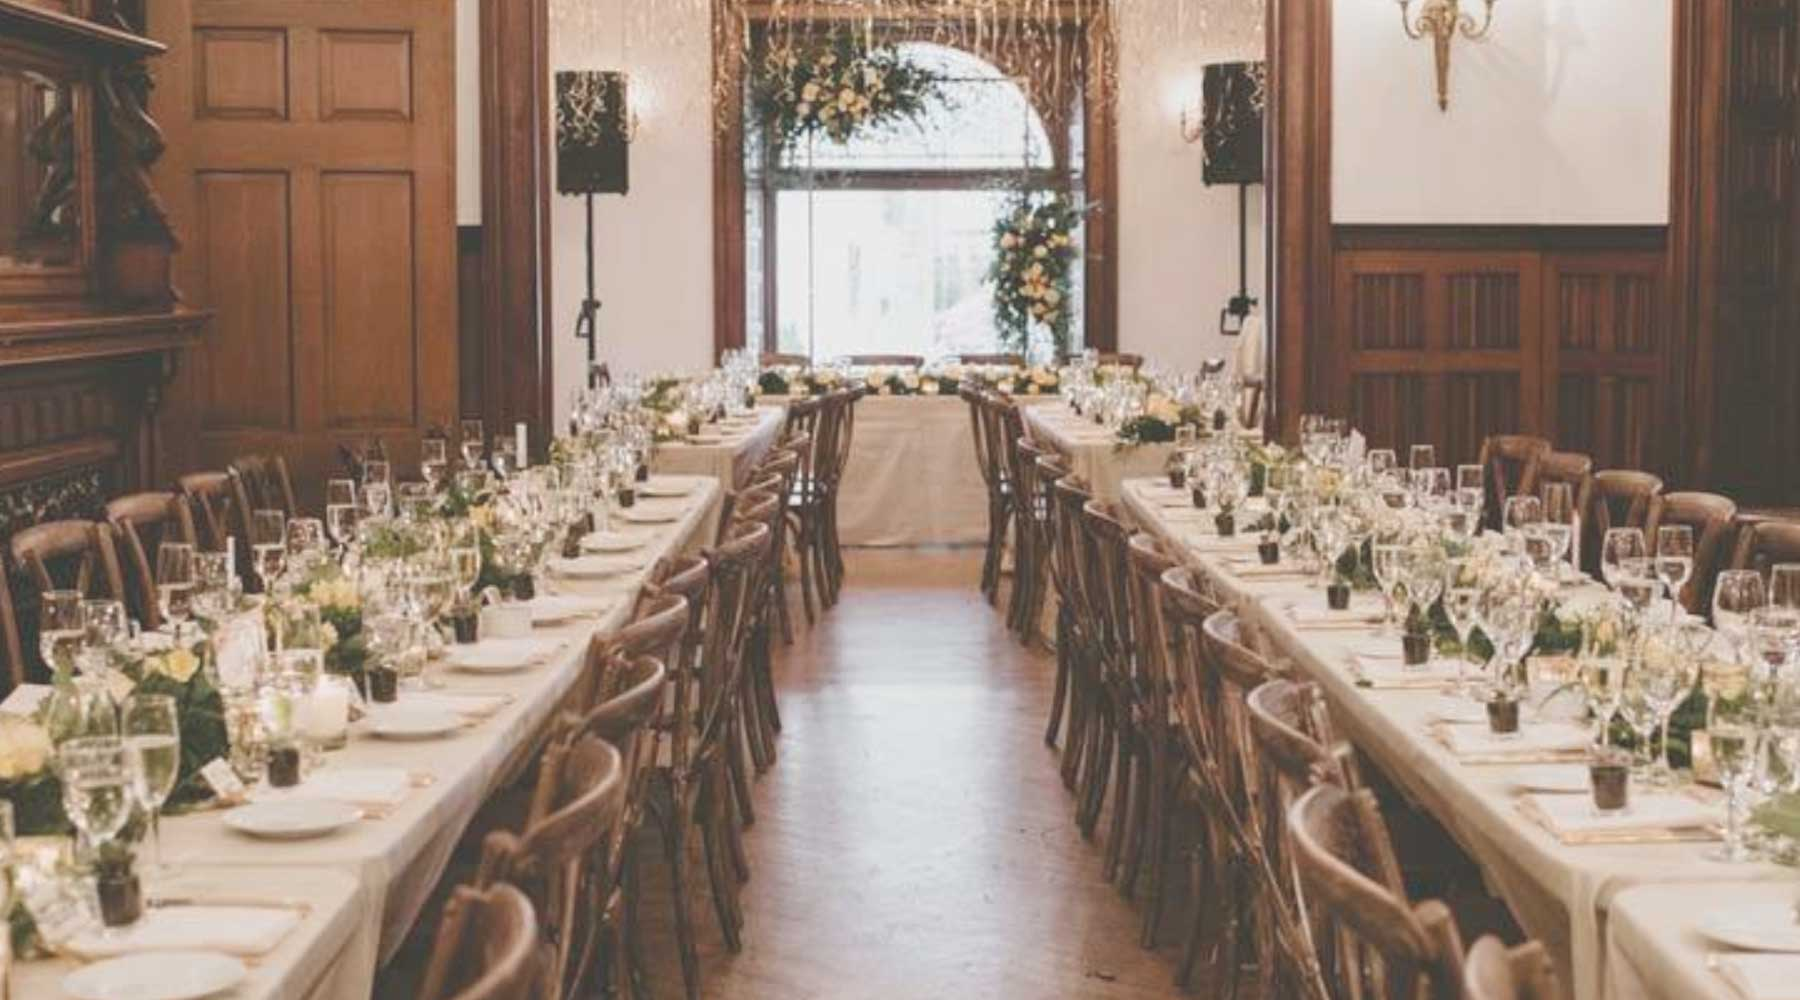 The Berkeley Bicycle Club Event Venue | Just Wine